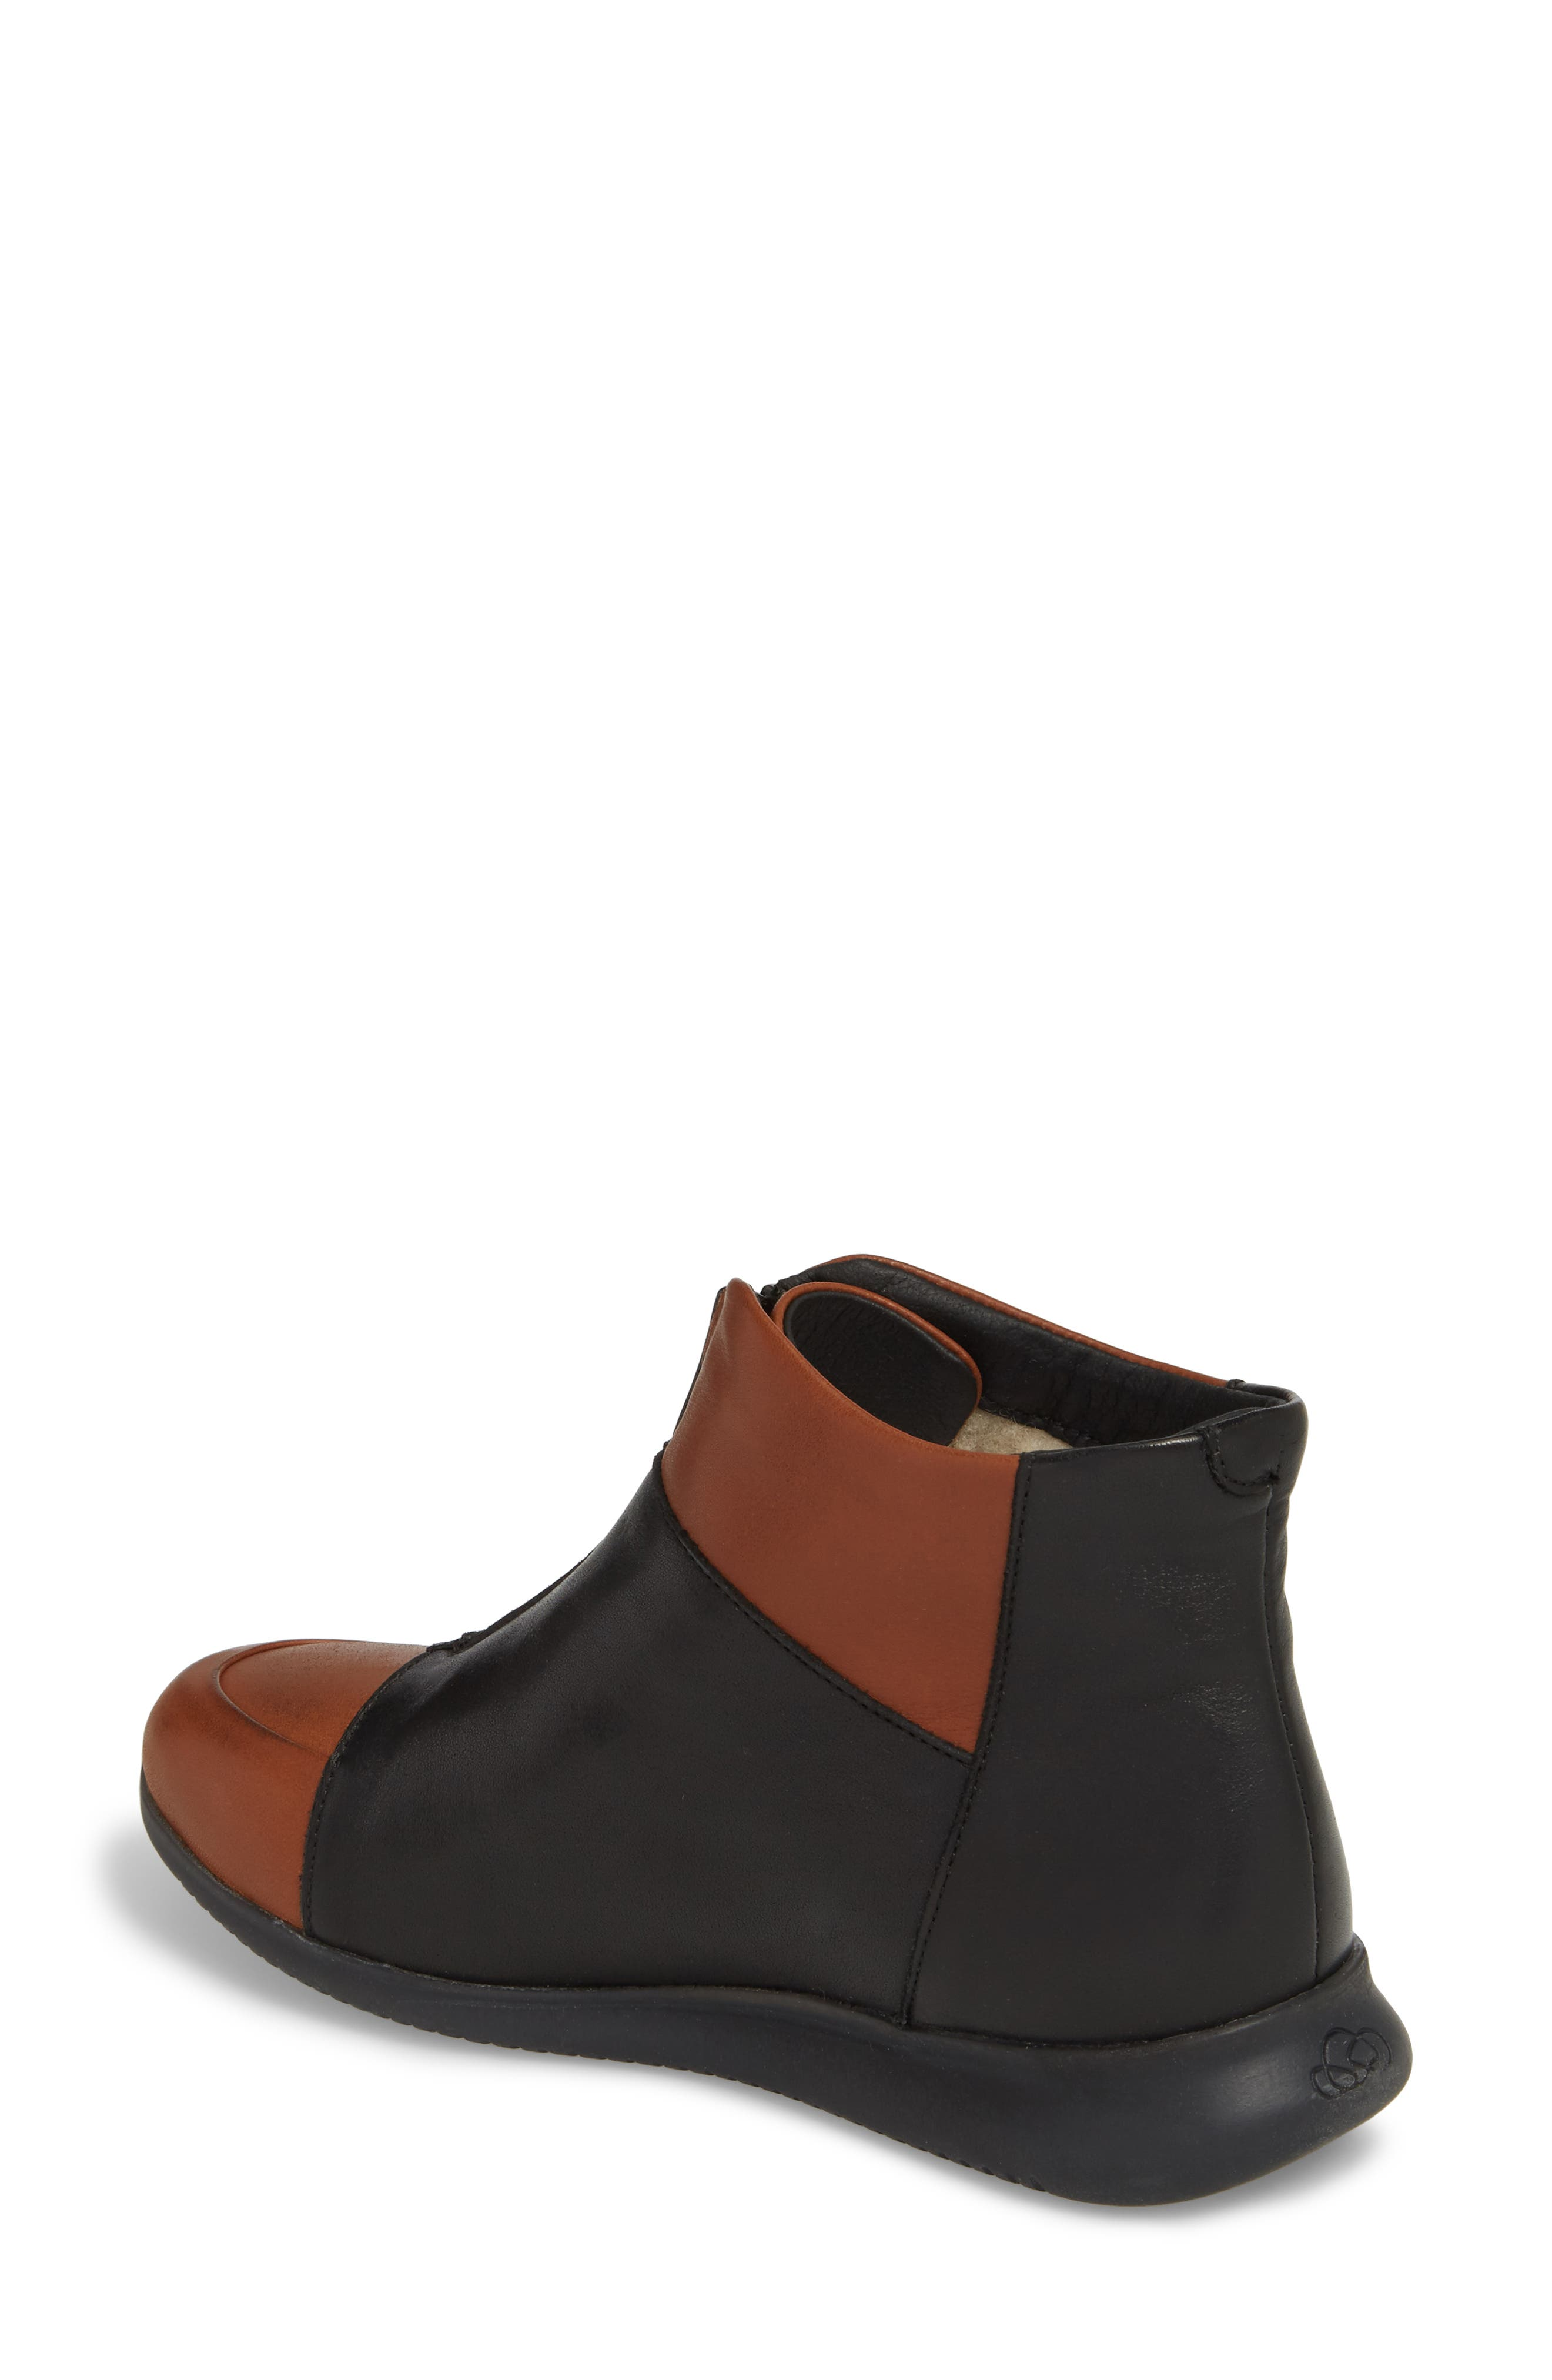 Roy Wool Lined Cap Toe Bootie,                             Alternate thumbnail 2, color,                             Cuoio/ Black Leather